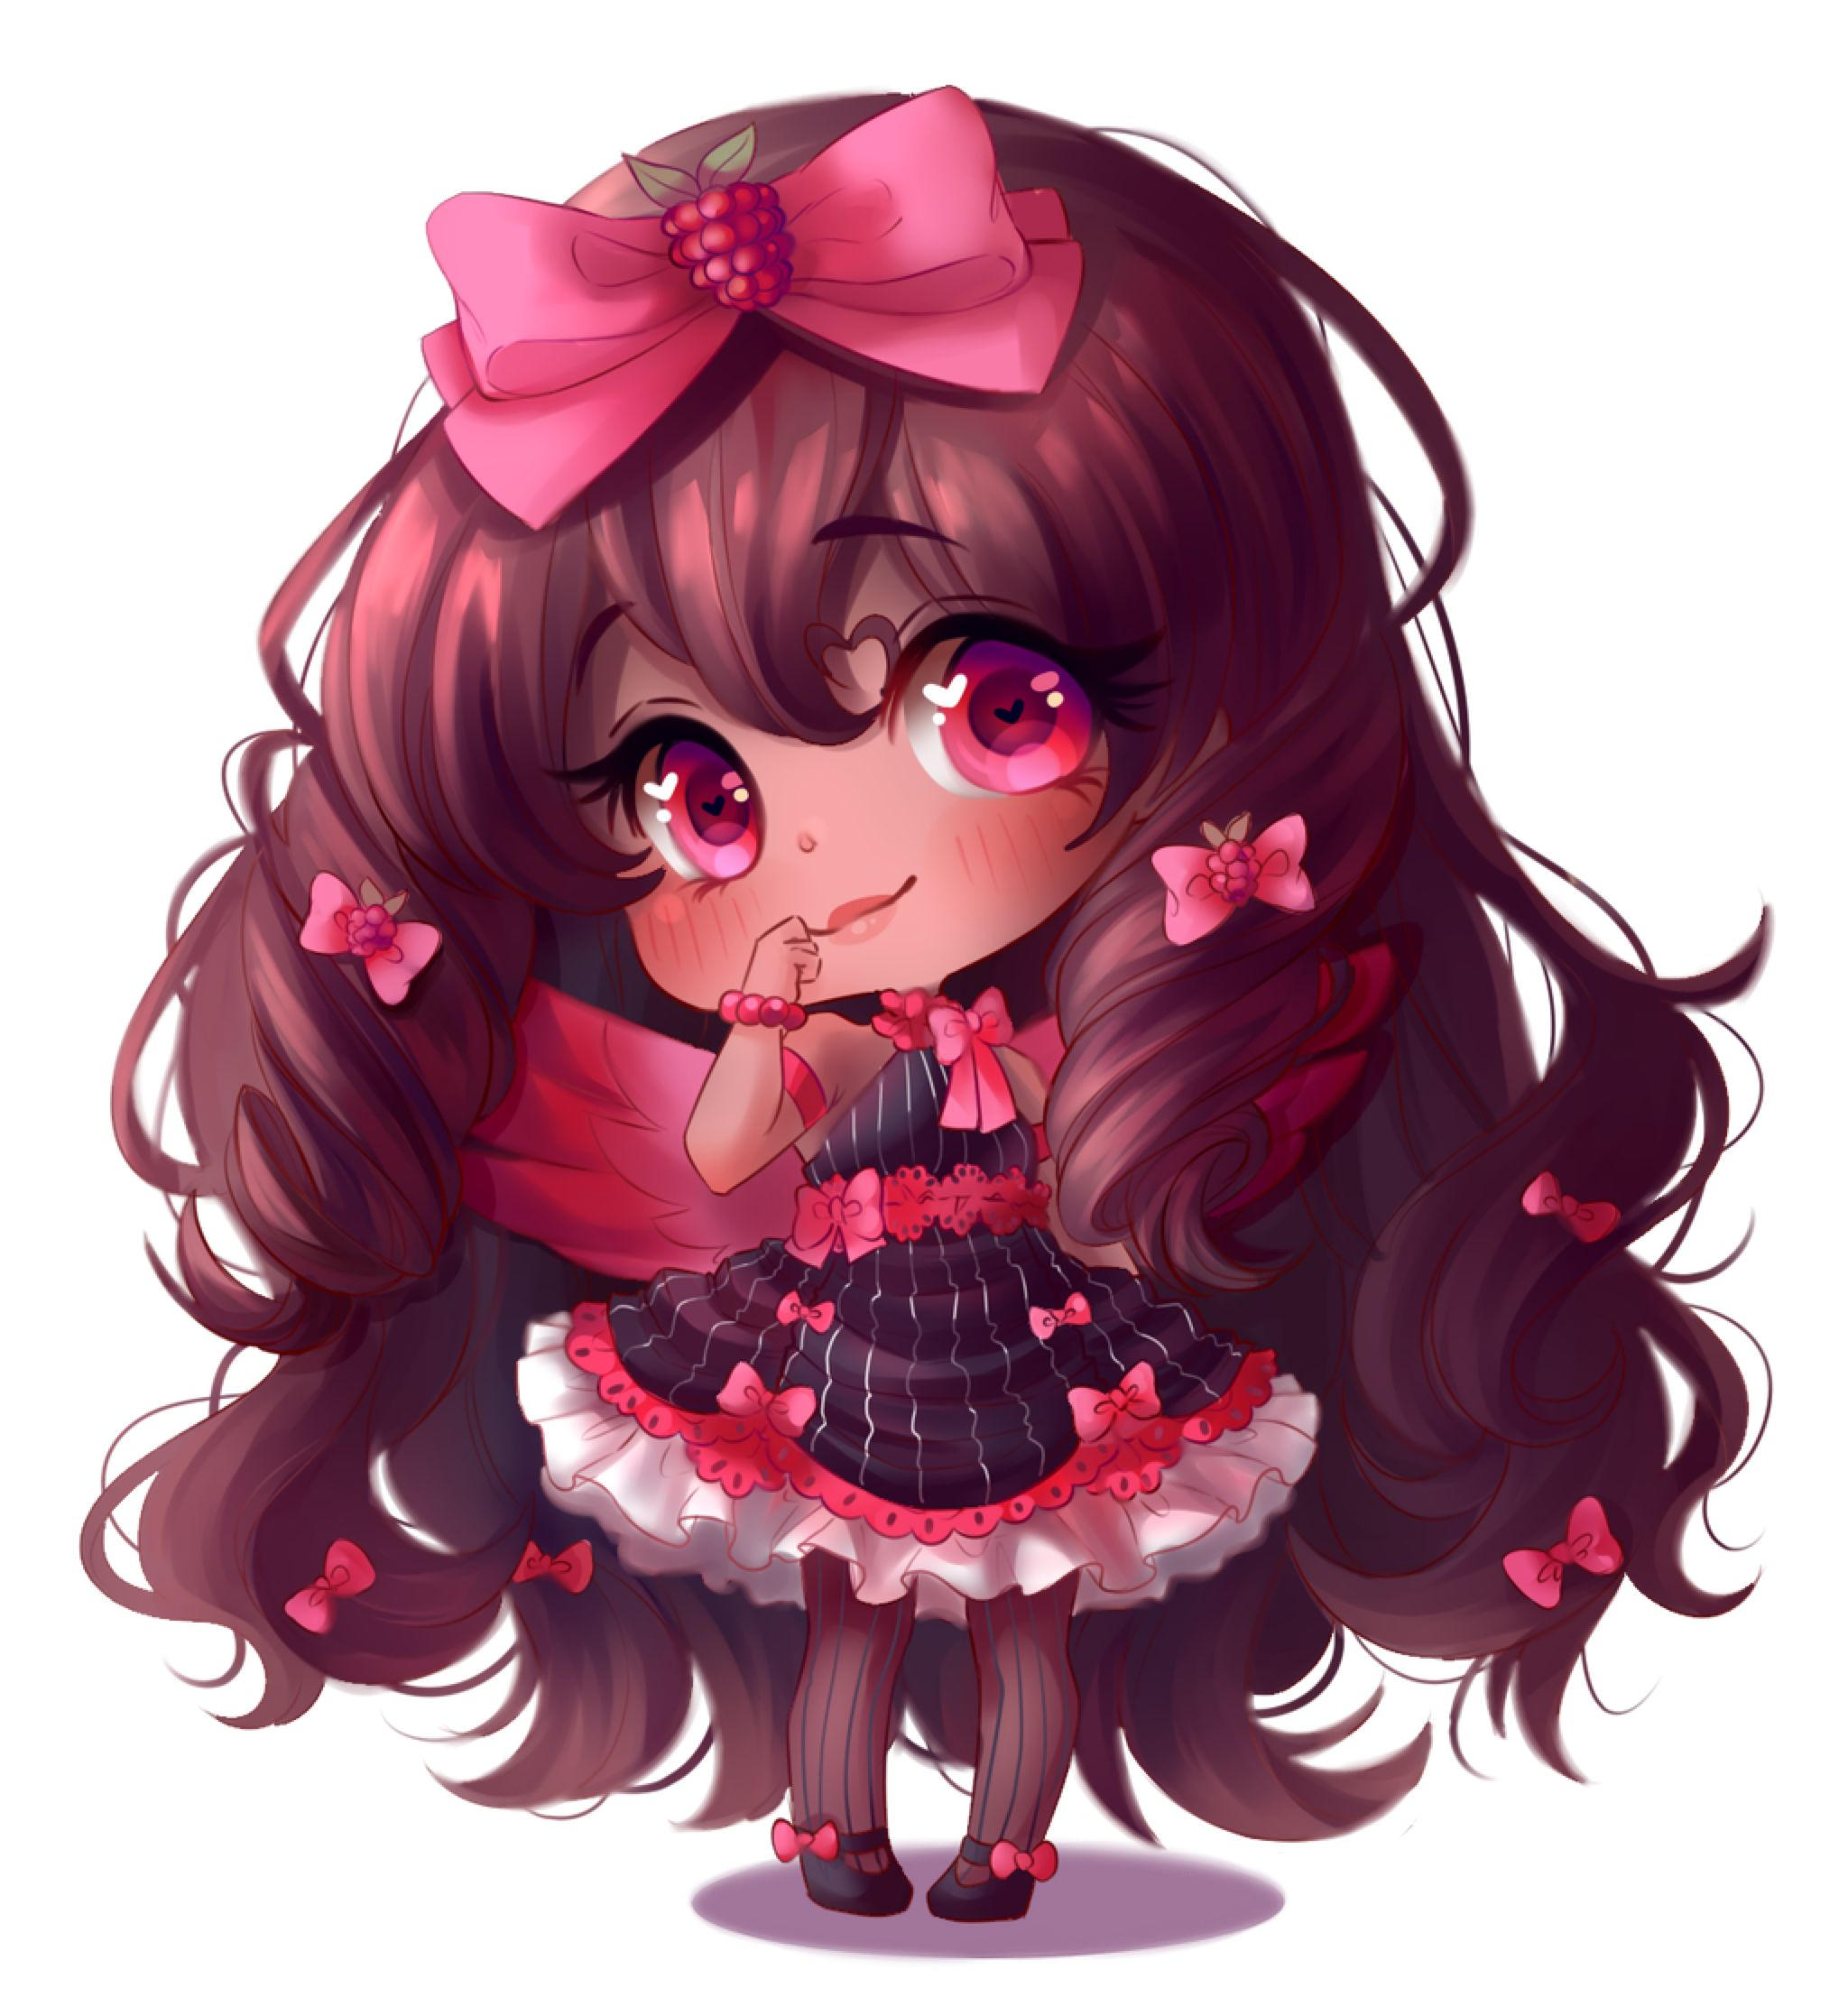 rollingpoly Commission by oWinTer on @DeviantArt  Cute anime